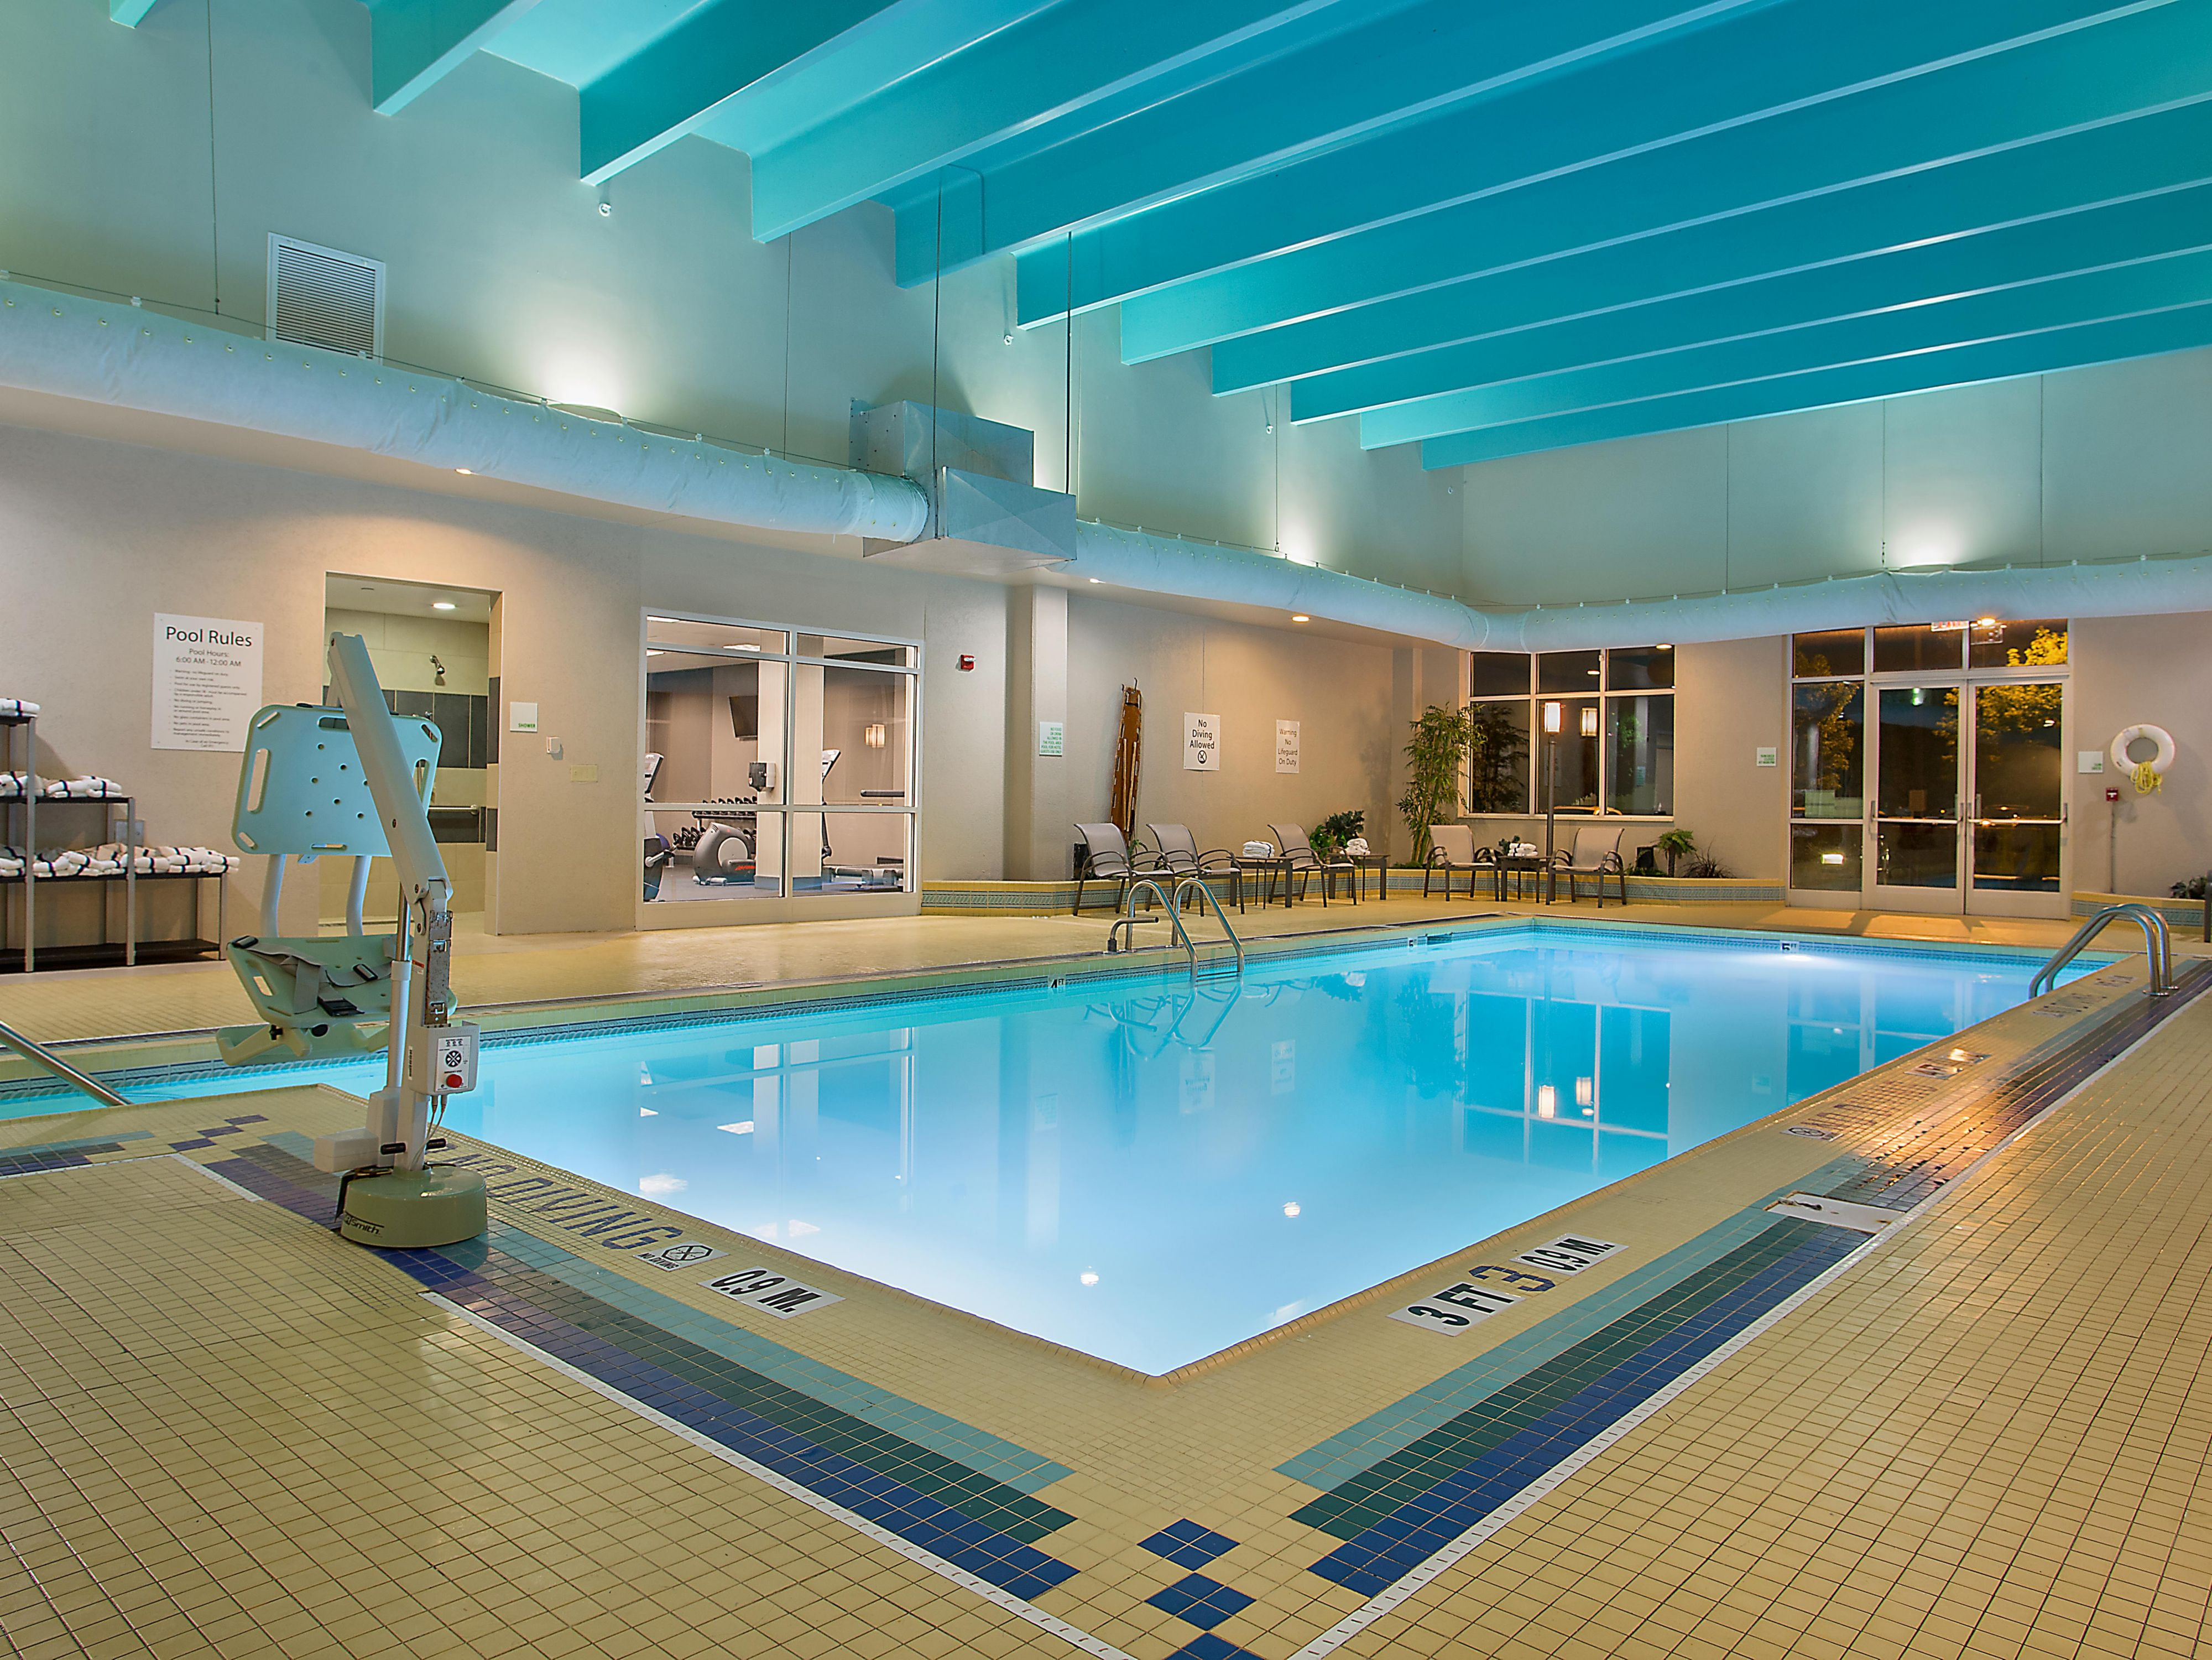 Enjoy a relaxing swim in our heated, indoor pool